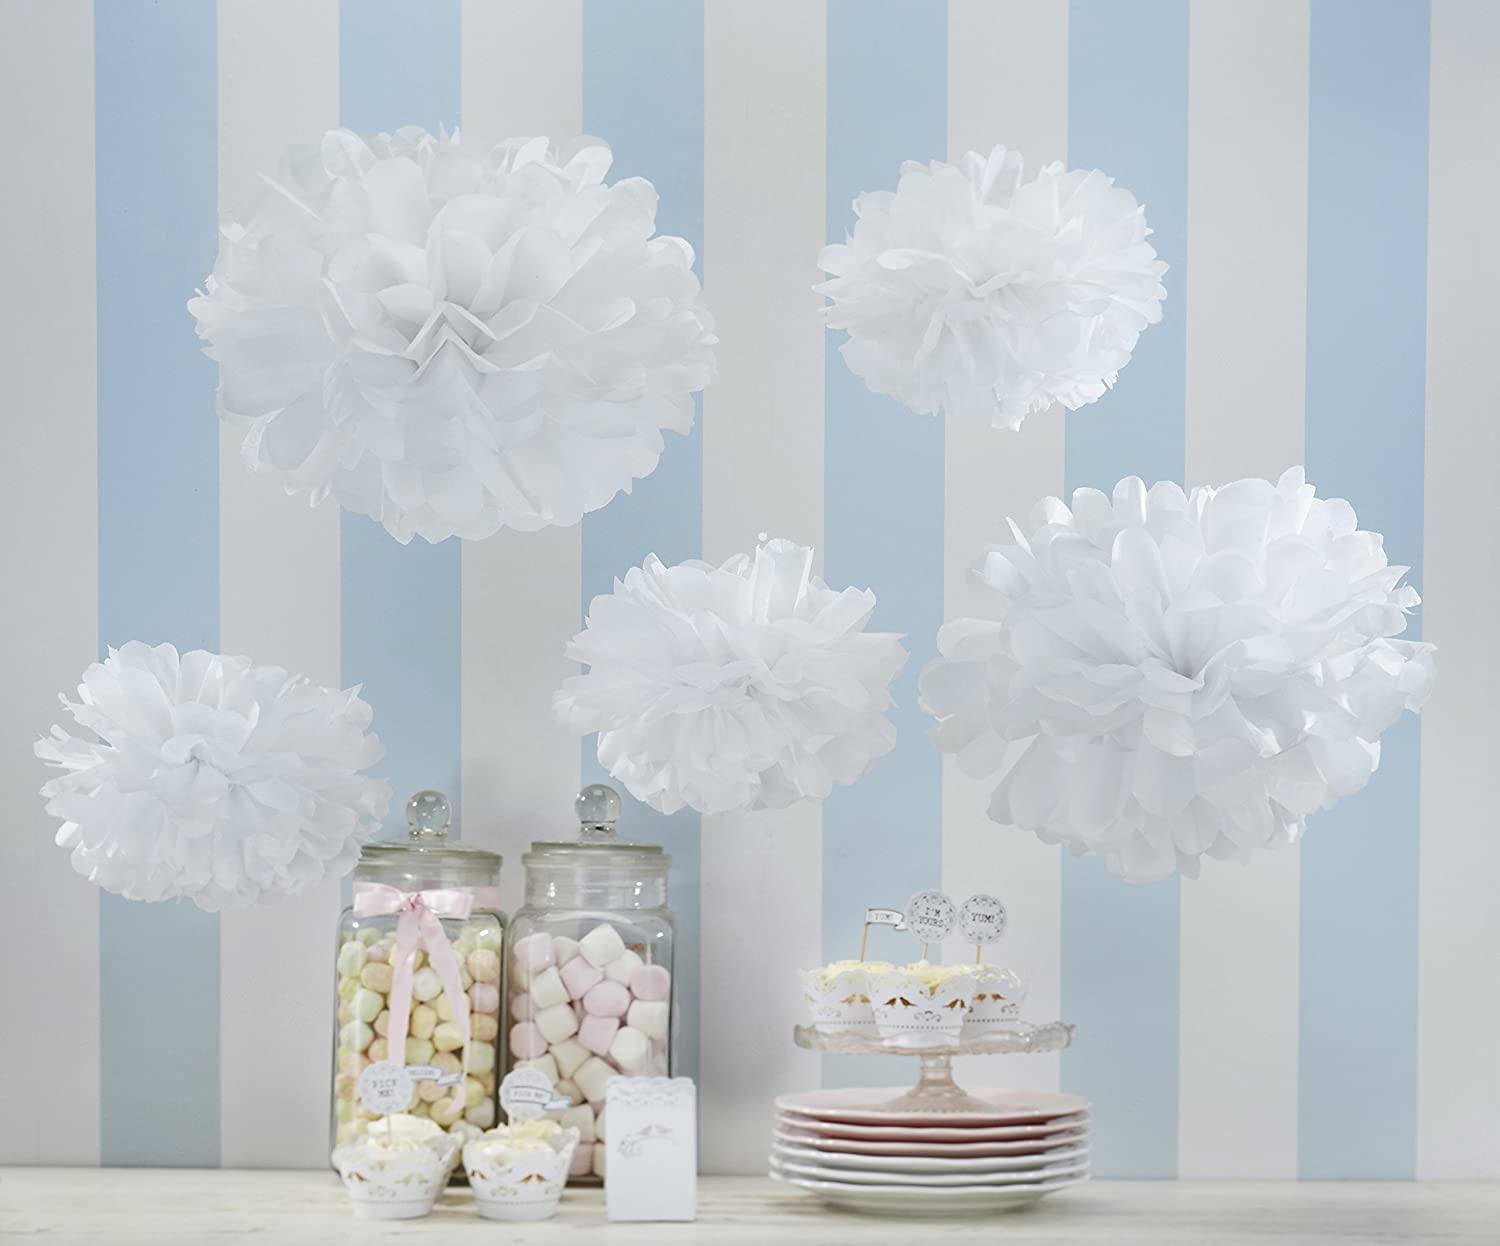 Amazon.com: Ginger Ray Vintage Lace Tissue Paper Pom Poms for ...